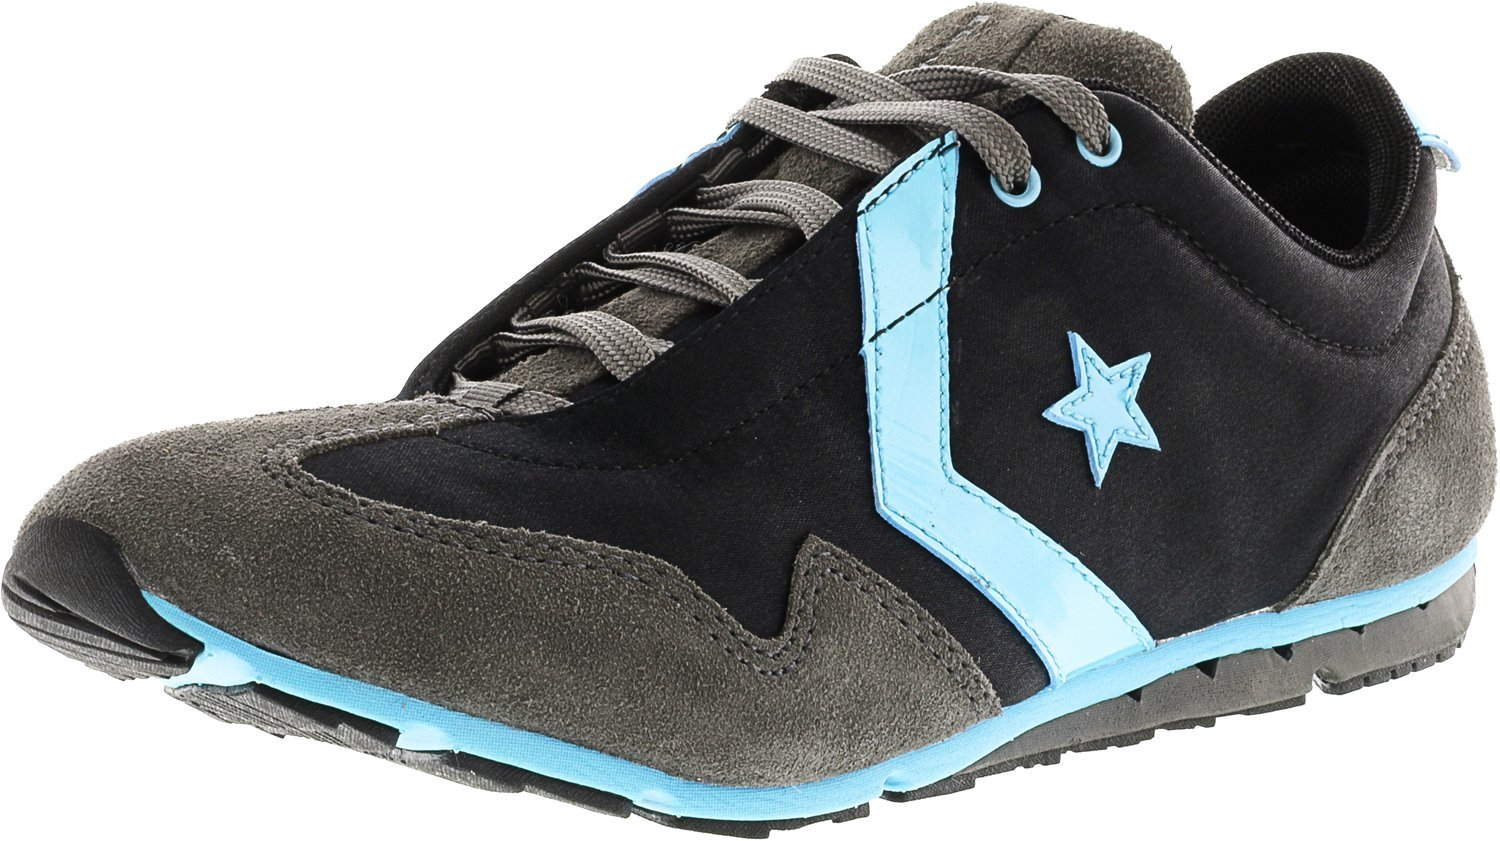 Converse Women's Revival Ox Casual Shoe Black, Gray, Turquoise (6.5)